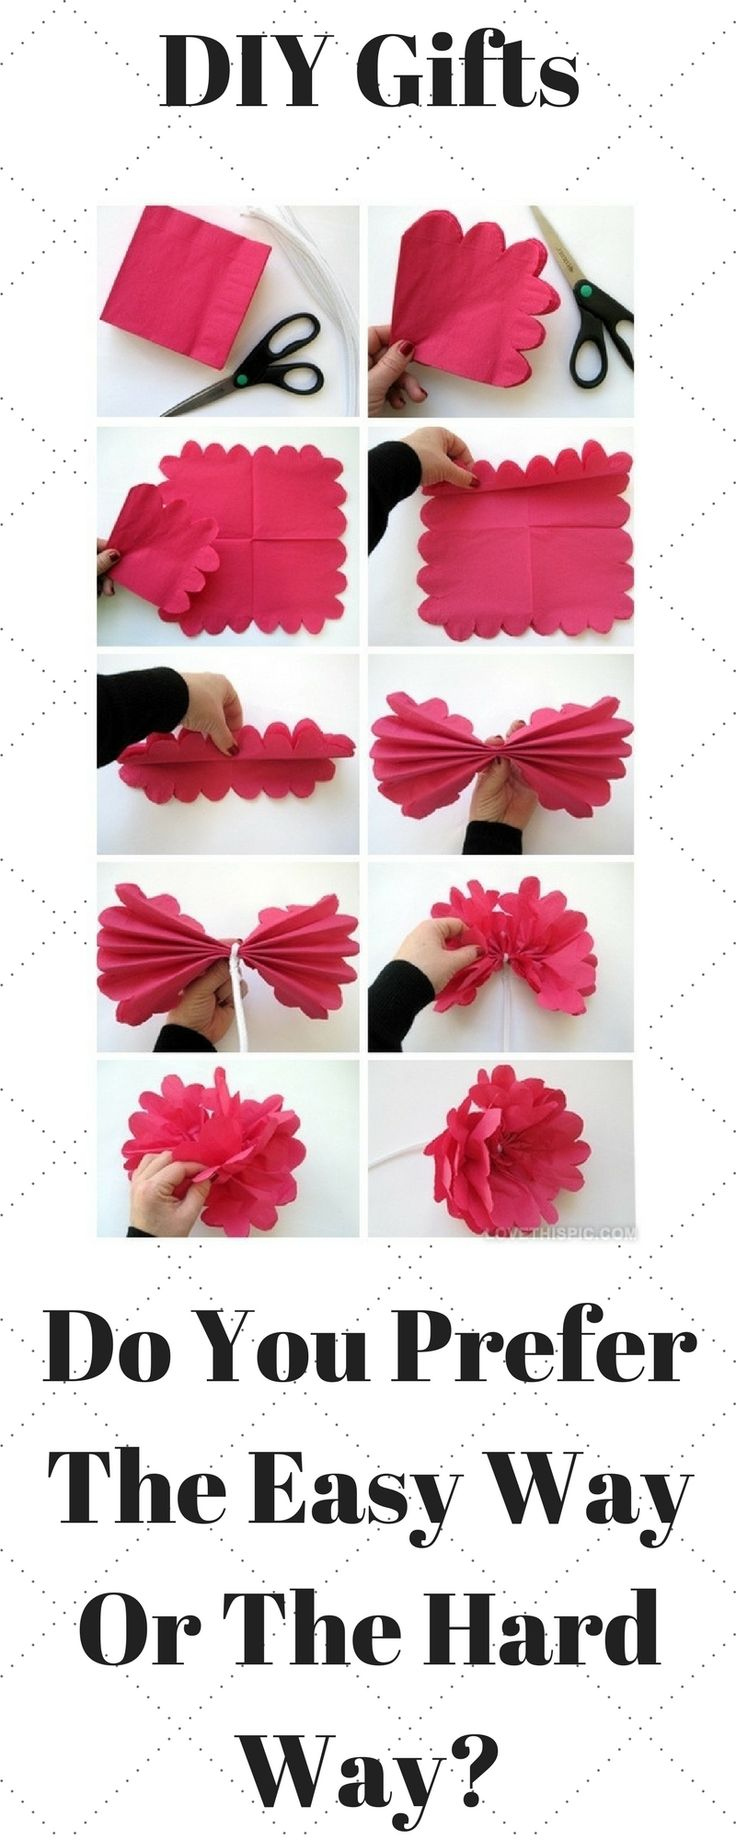 DIY Gifts - Do You Prefer The Easy Way Or The Hard Way? Beautiful Gifts to Make Relationship Stronge  ideas gifts for her gifts for her romantic gifts diy ideasDIY Gifts - Do You Prefer The Easy Way Or The Hard Way? Beautiful Gifts to Make Relationship Stronge  ideas gifts for her gifts for her romantic gifts diy ideas #giftsforher